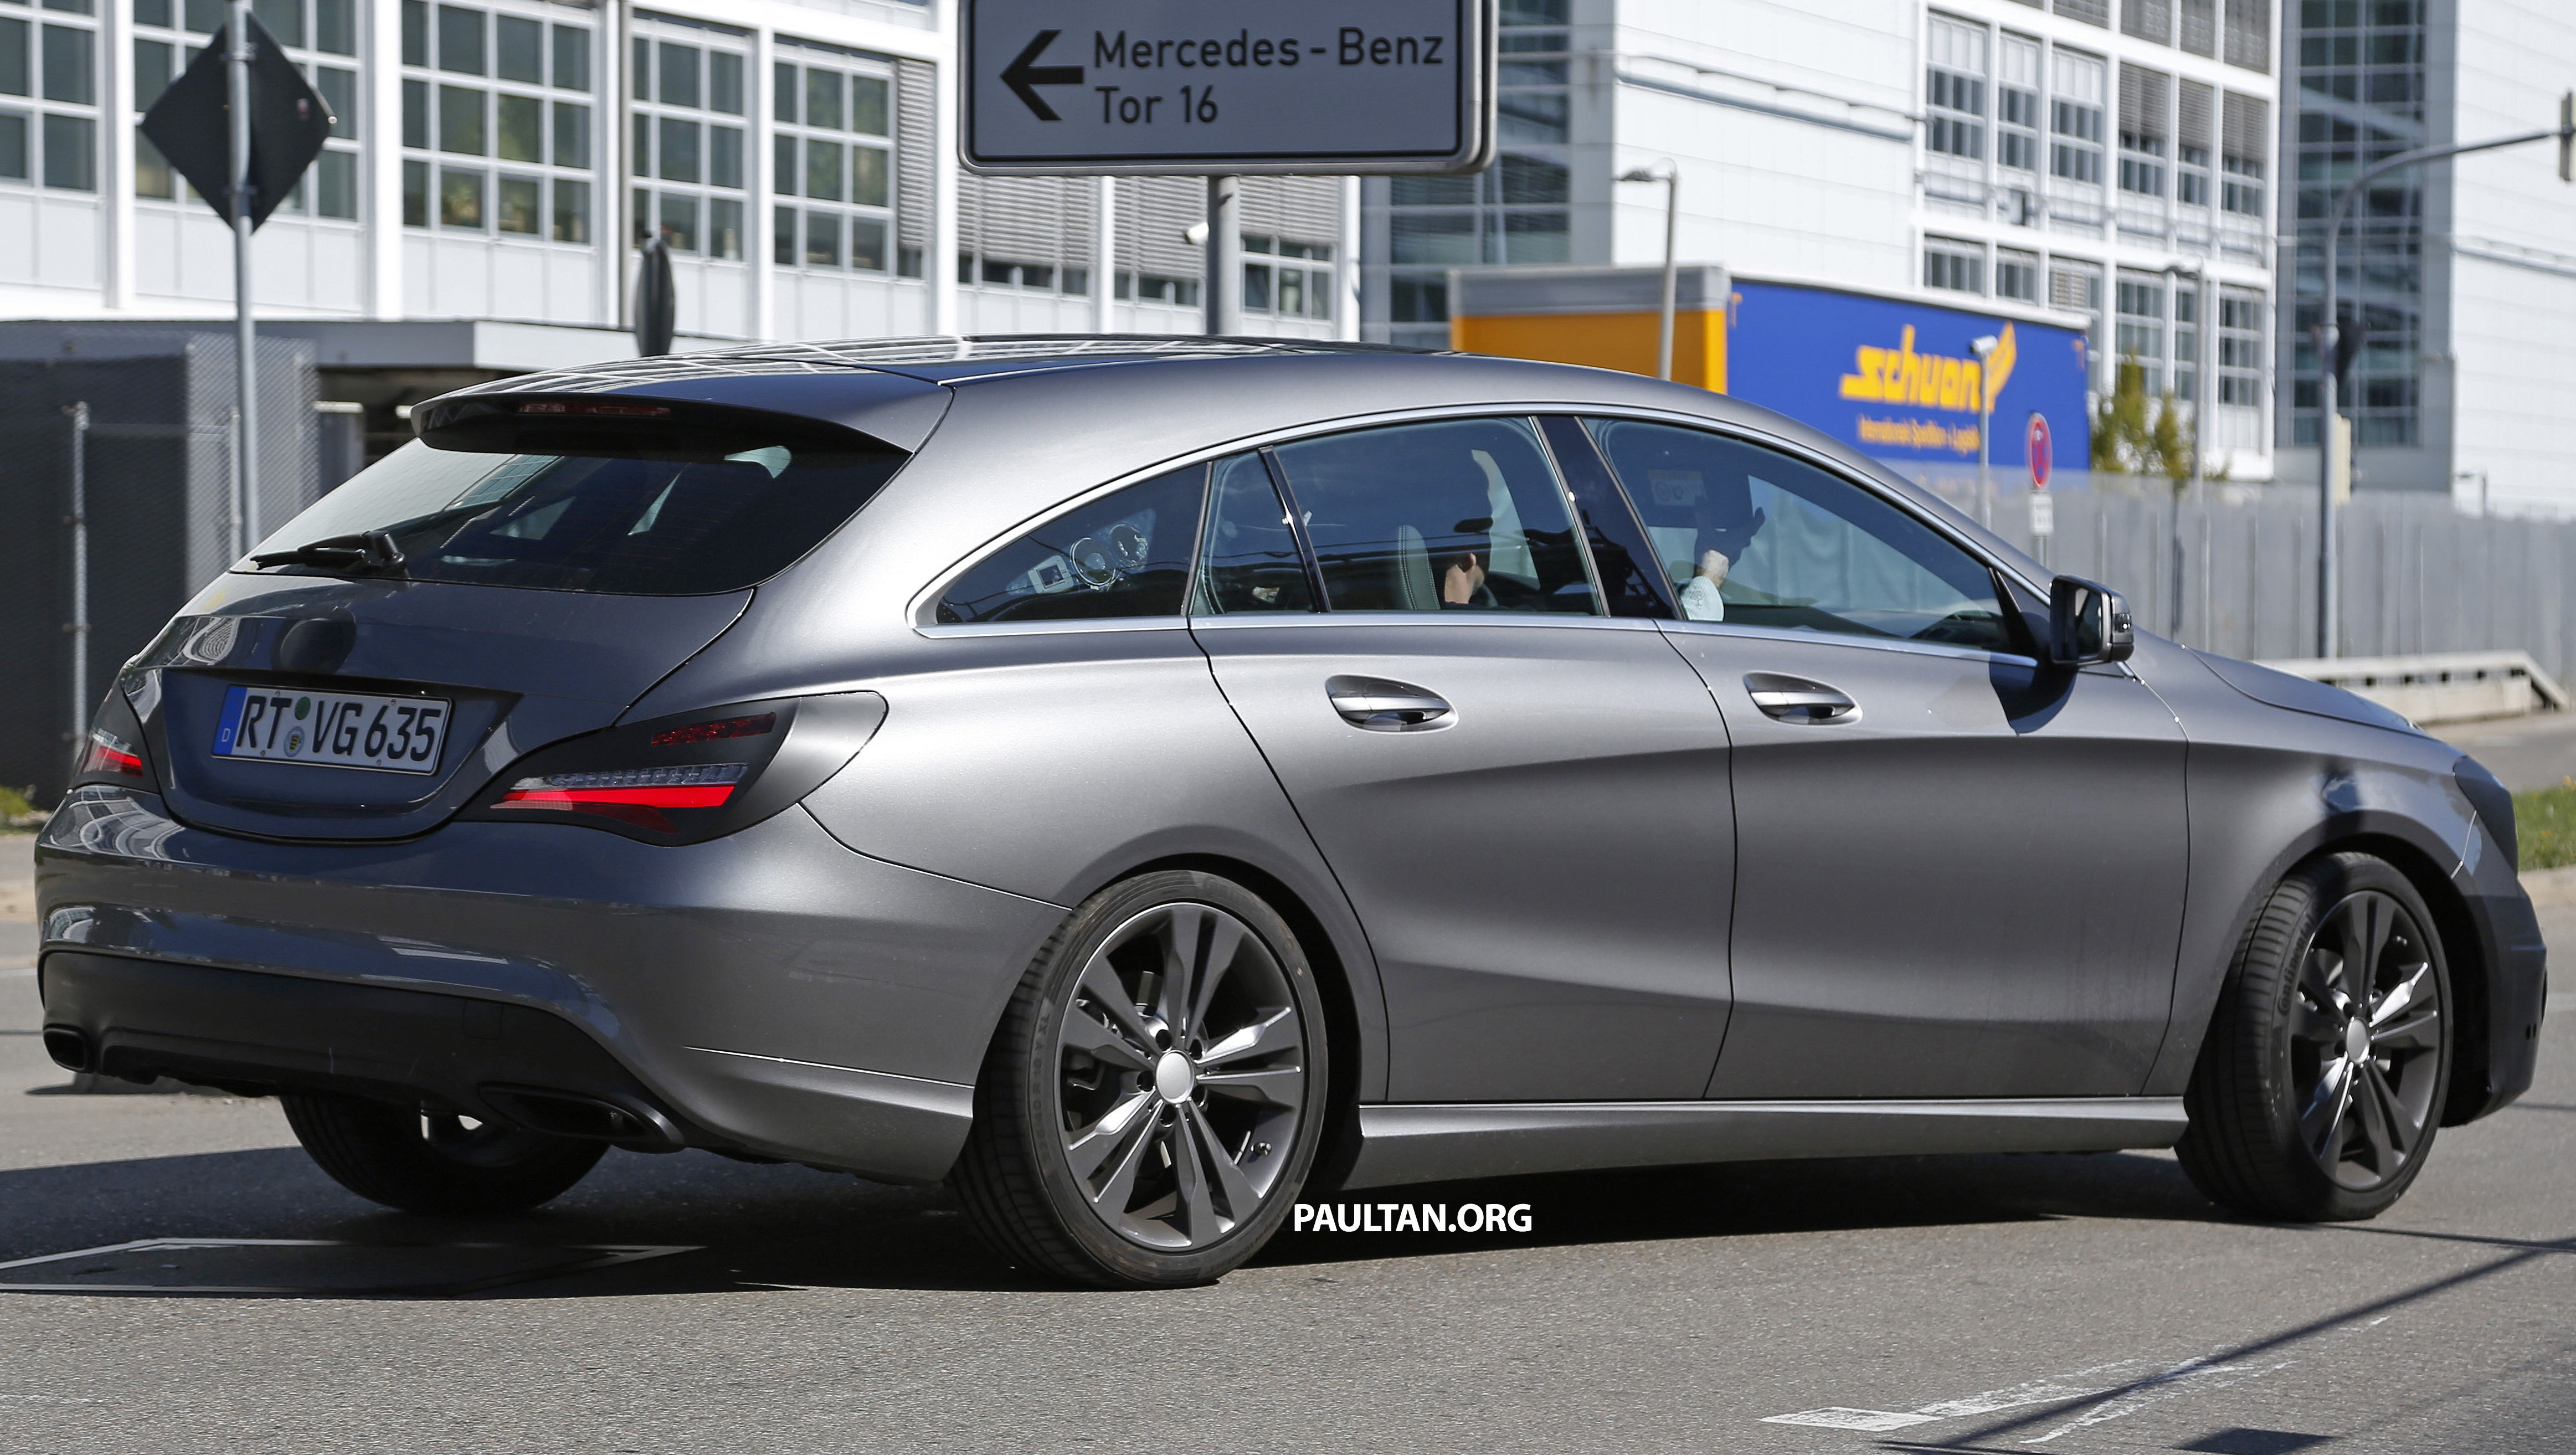 SPIED: New Mercedes-Benz CLA, CLA Shooting Brake Paul Tan - Image 387518